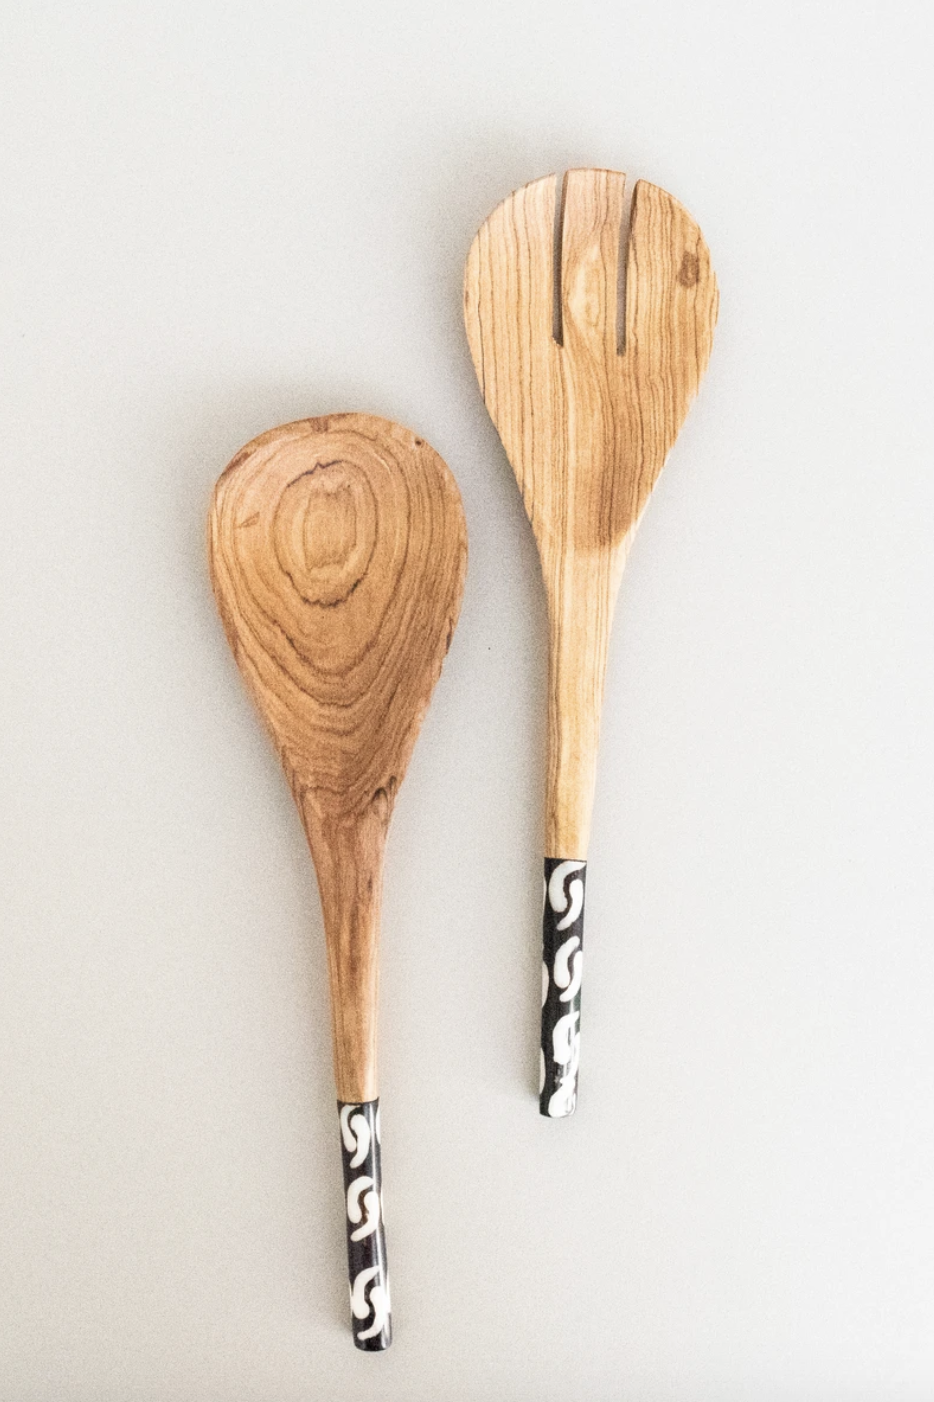 """<p><strong>Amani ya Juu</strong></p><p>amaniafrica.org</p><p><strong>$18.00</strong></p><p><a href=""""https://amaniafrica.org/collections/kitchen-and-home/products/thin-handle-spoon-set"""" rel=""""nofollow noopener"""" target=""""_blank"""" data-ylk=""""slk:SHOP IT"""" class=""""link rapid-noclick-resp"""">SHOP IT</a></p><p>Amani ya Juu, which means peace from above in Swahil, carries a range of goods from handbags to kitchen decor to jewelry. The products are made by women all over Africa with its motifs and colors. In addition to buying these handmade artisan goods, you can directly donate to any of the <a href=""""https://amaniafrica.org/pages/donate"""" rel=""""nofollow noopener"""" target=""""_blank"""" data-ylk=""""slk:brand's charities"""" class=""""link rapid-noclick-resp"""">brand's charities</a> of your choosing. </p>"""